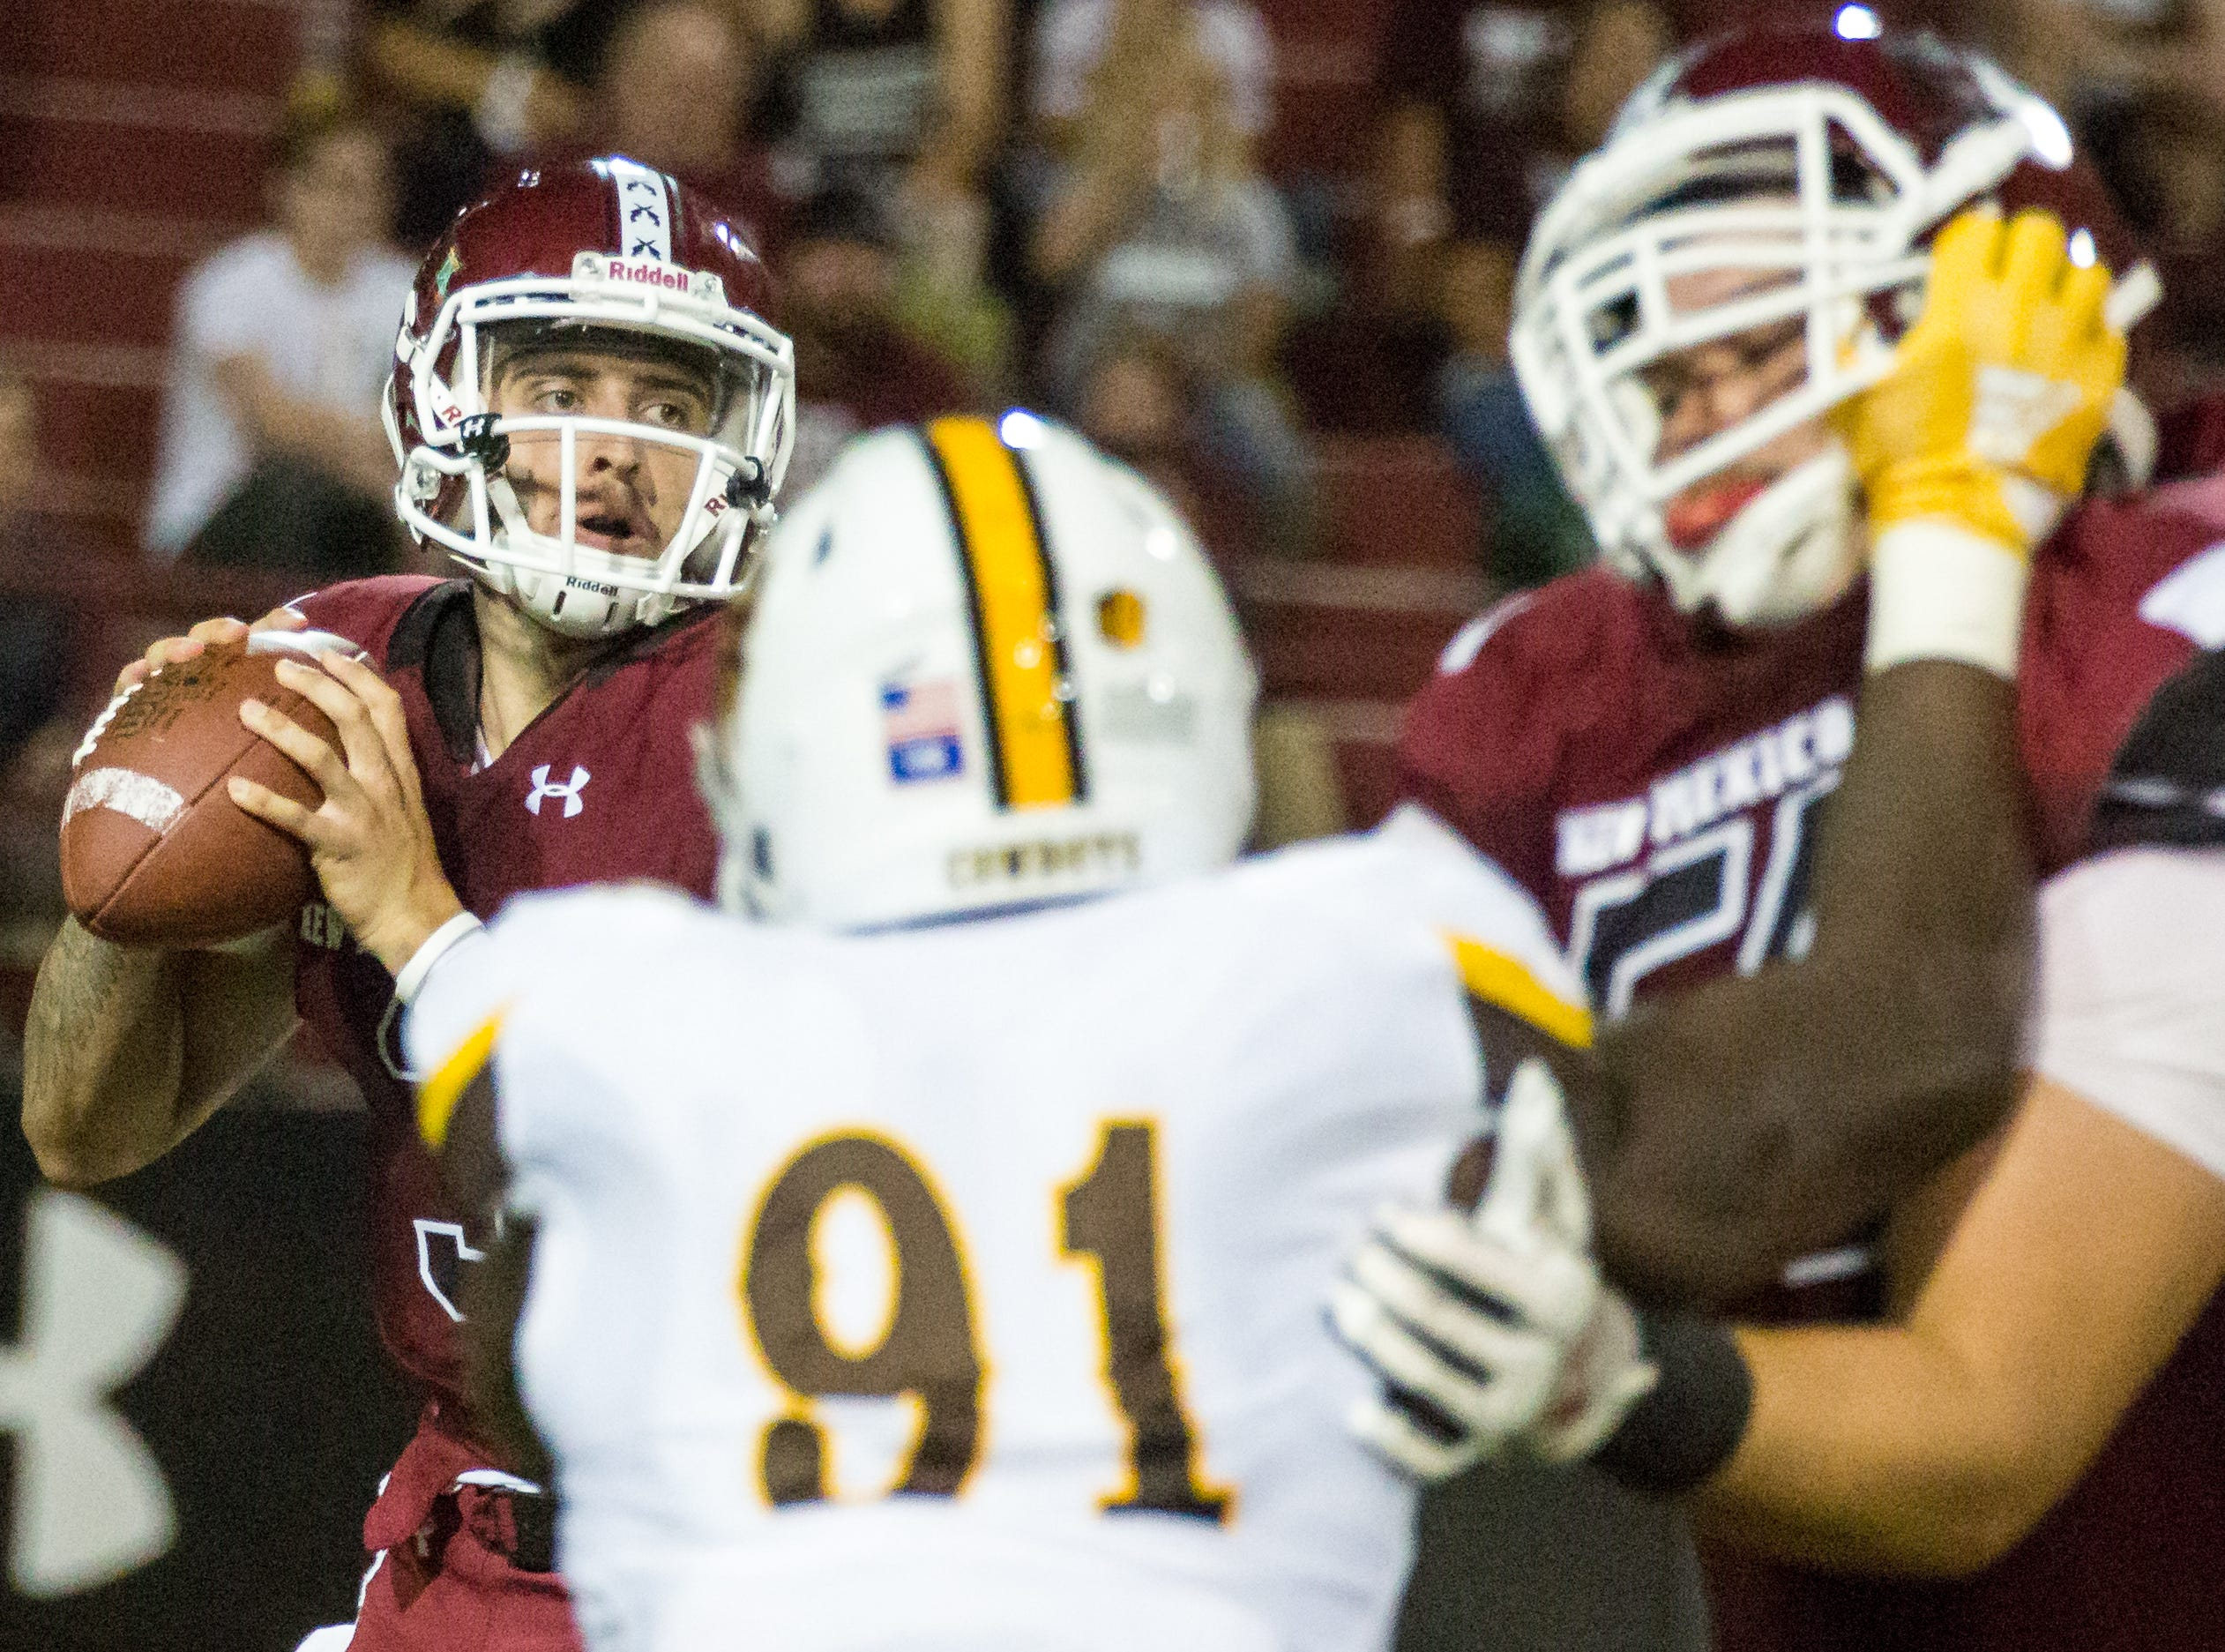 NMSU quarterback Matt Romero looks for a receiver with traffic in the foreground on Saturday, August 25, 2018, during the NMSU/Wyoming game at the Aggie Memorial Stadium.